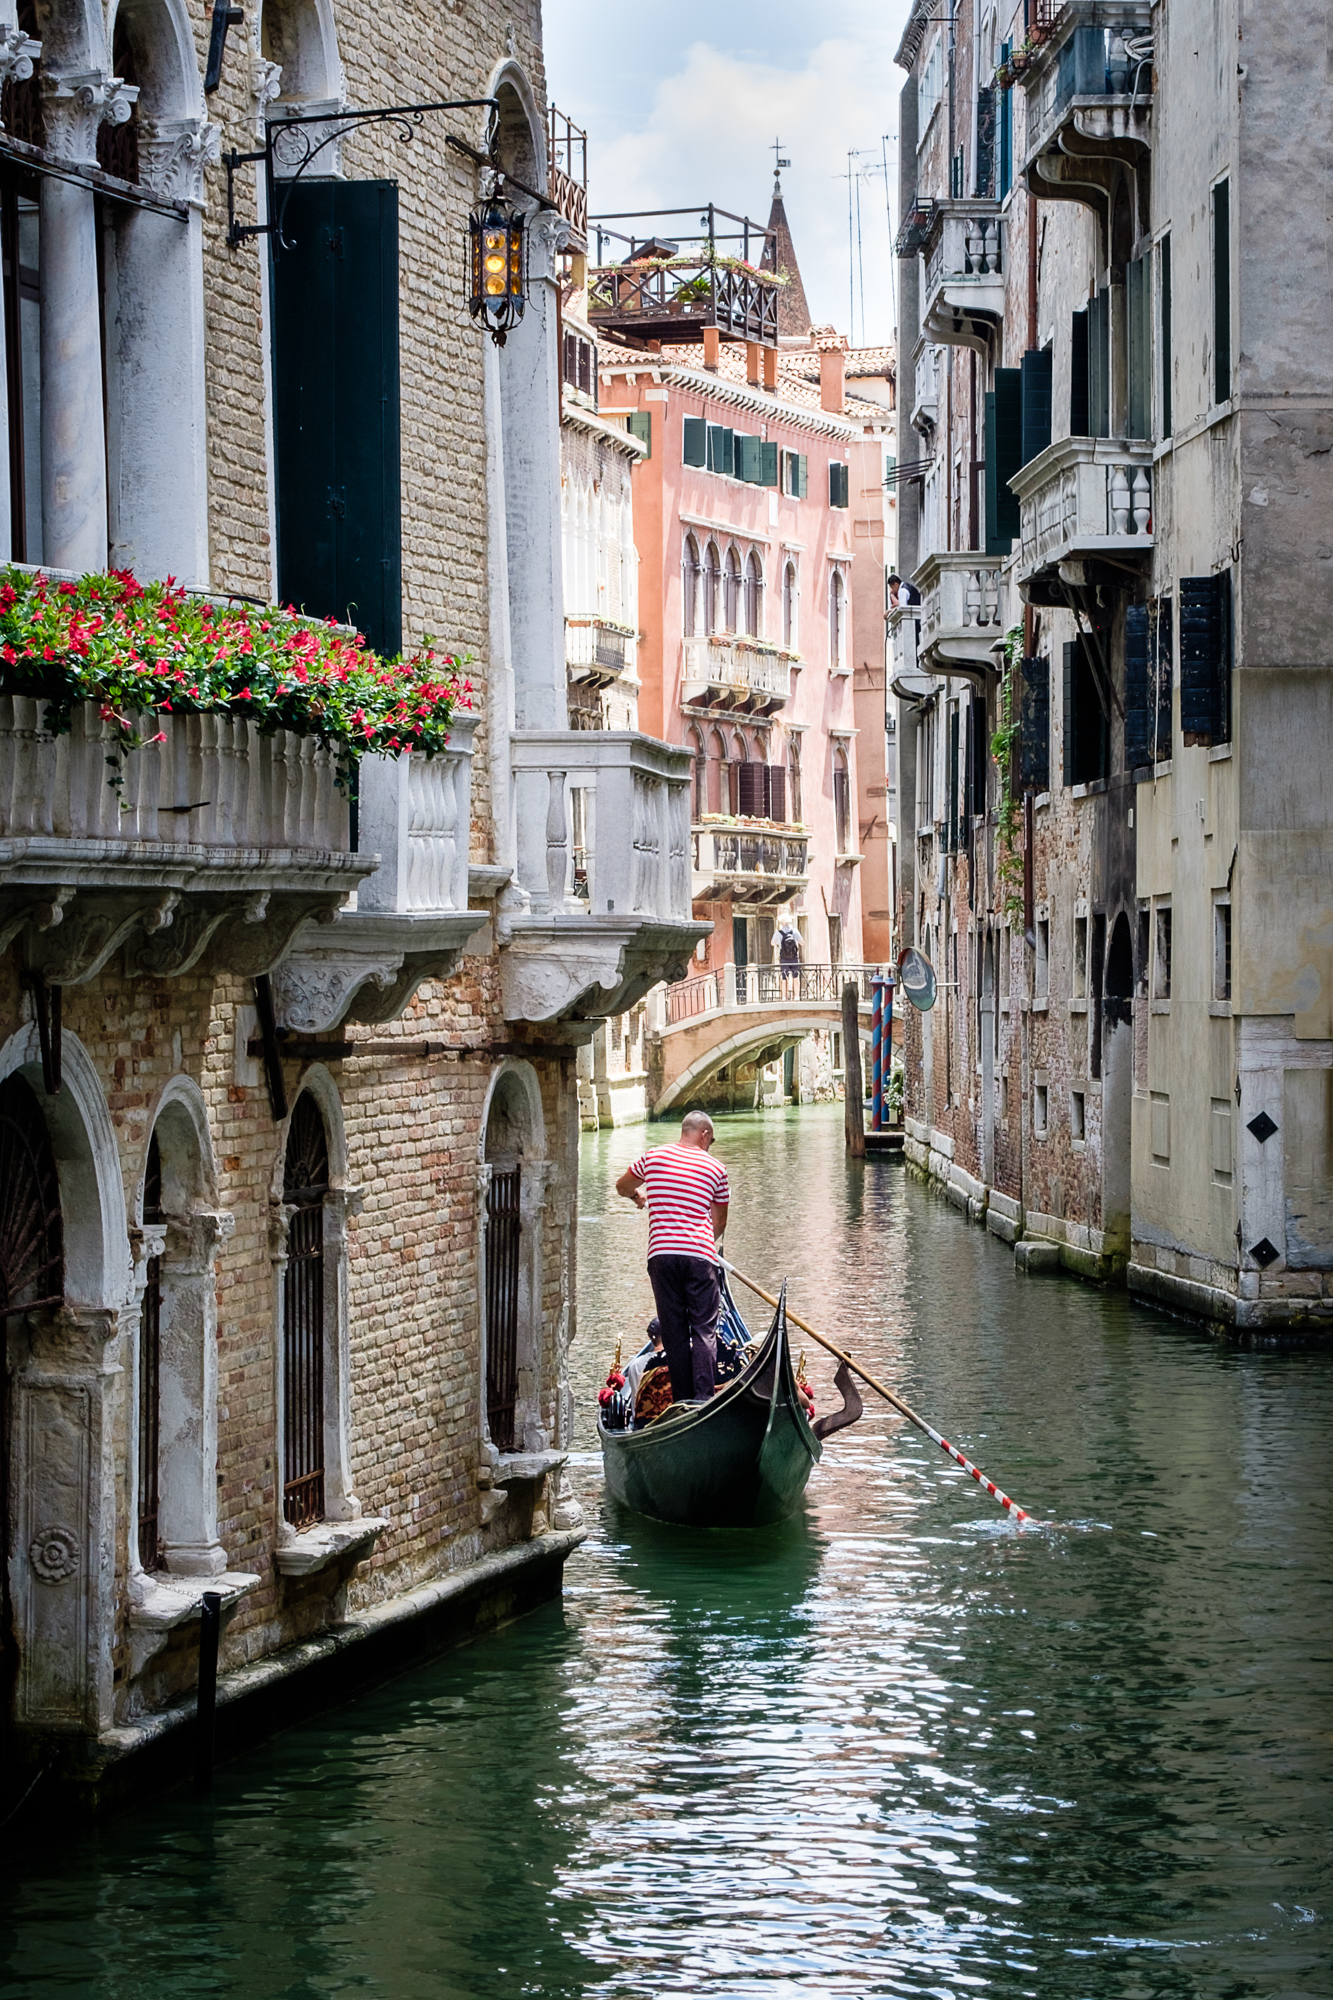 Photo of a gondola along the venetian canal taken by Trevor Sherwin